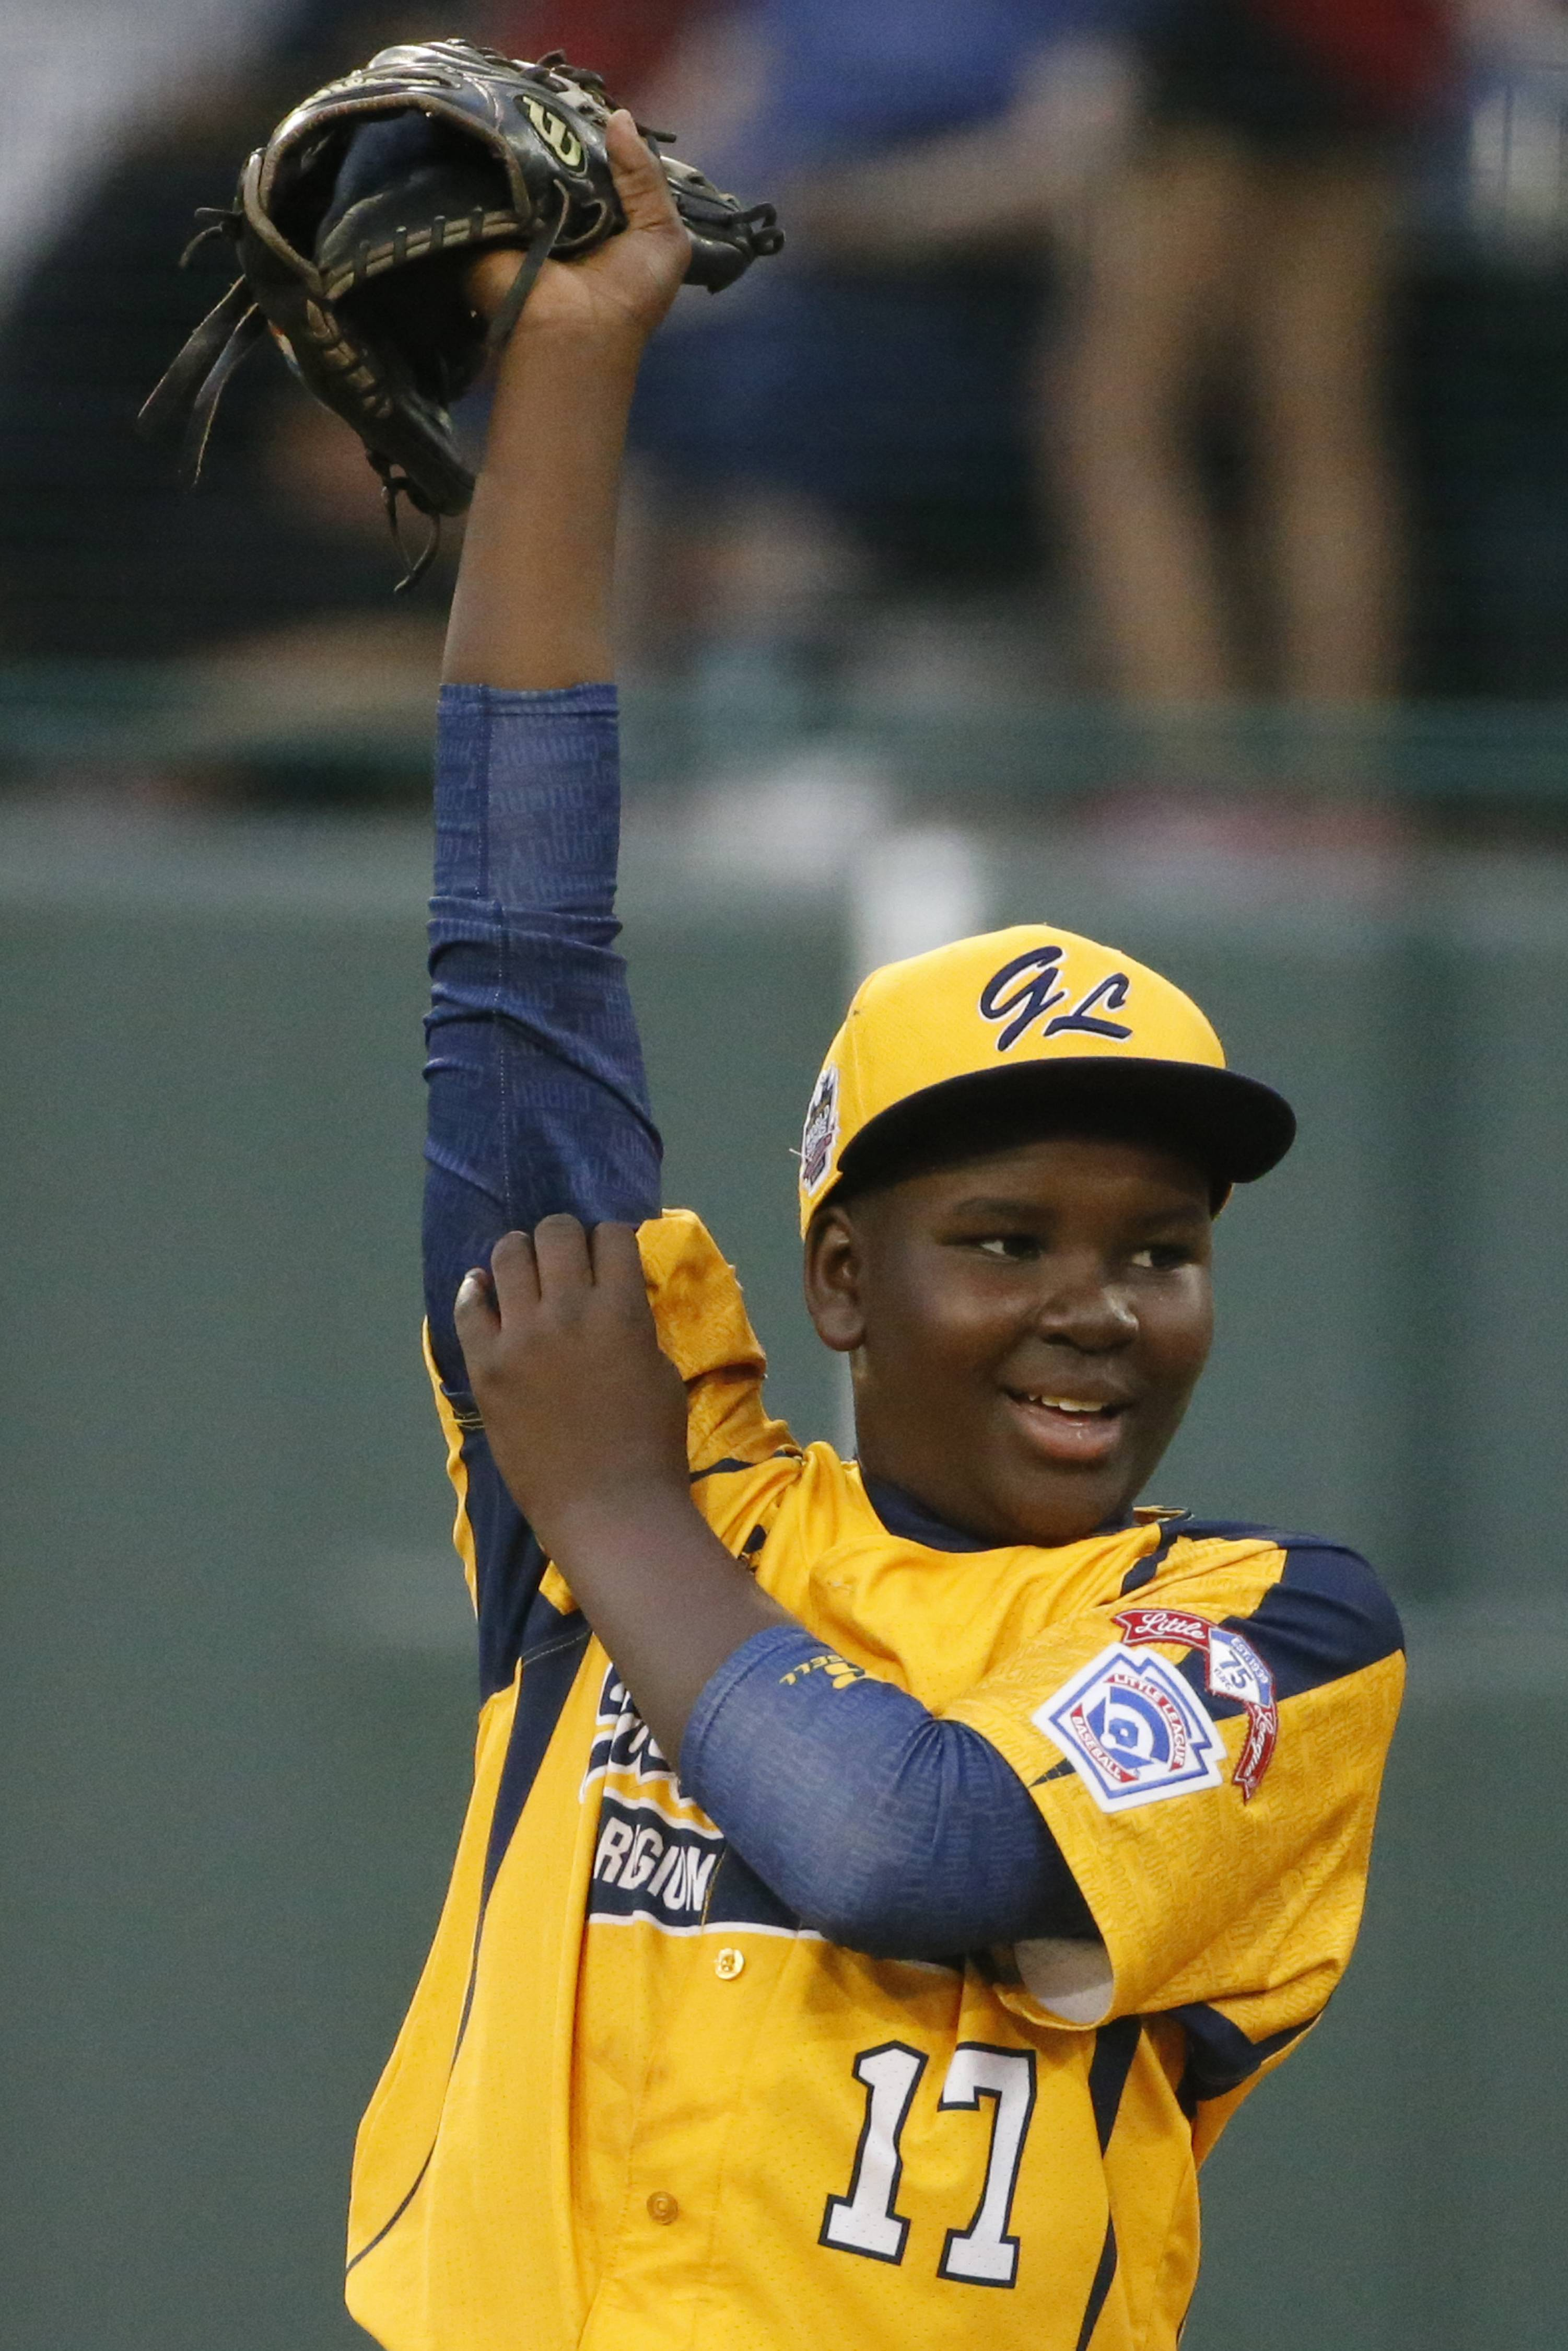 Chicago pitcher Joshua Houston helped his Jackie Robinson West team win an elimination game Tuesday at the Little League World Series in South Williamsport, Pa. Chicago beat Texas 6-1 and will play again on Thursday.